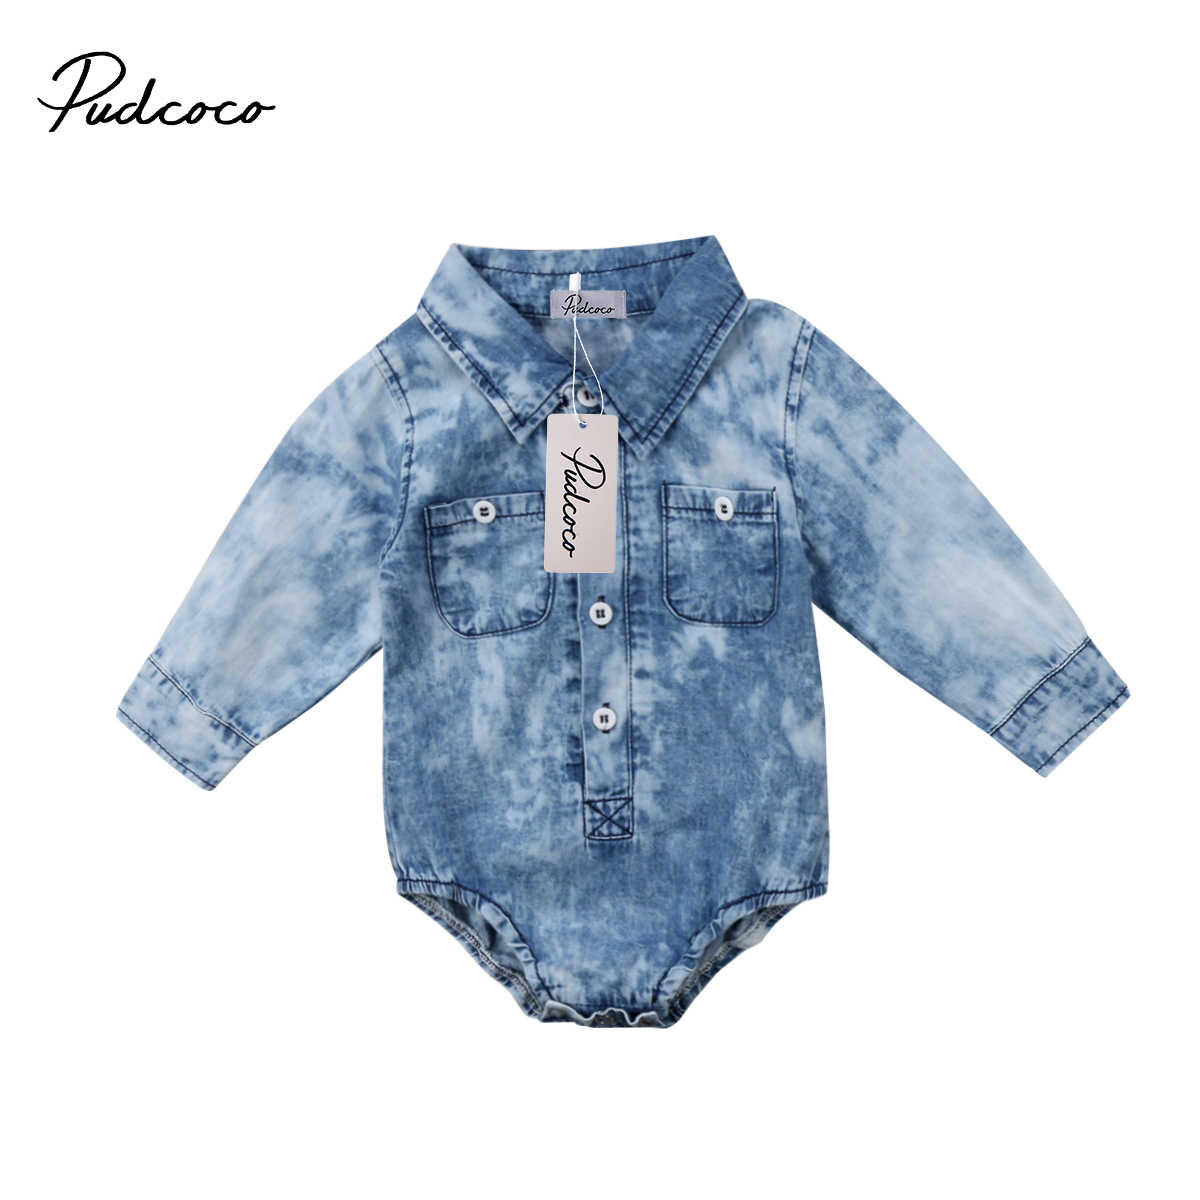 2018 Brand New Newborn Toddler Infant Baby Boy Denim Clothes Bodysuit T-shirt Jumpsuit Outfit Pocket Long Sleeve Clothes